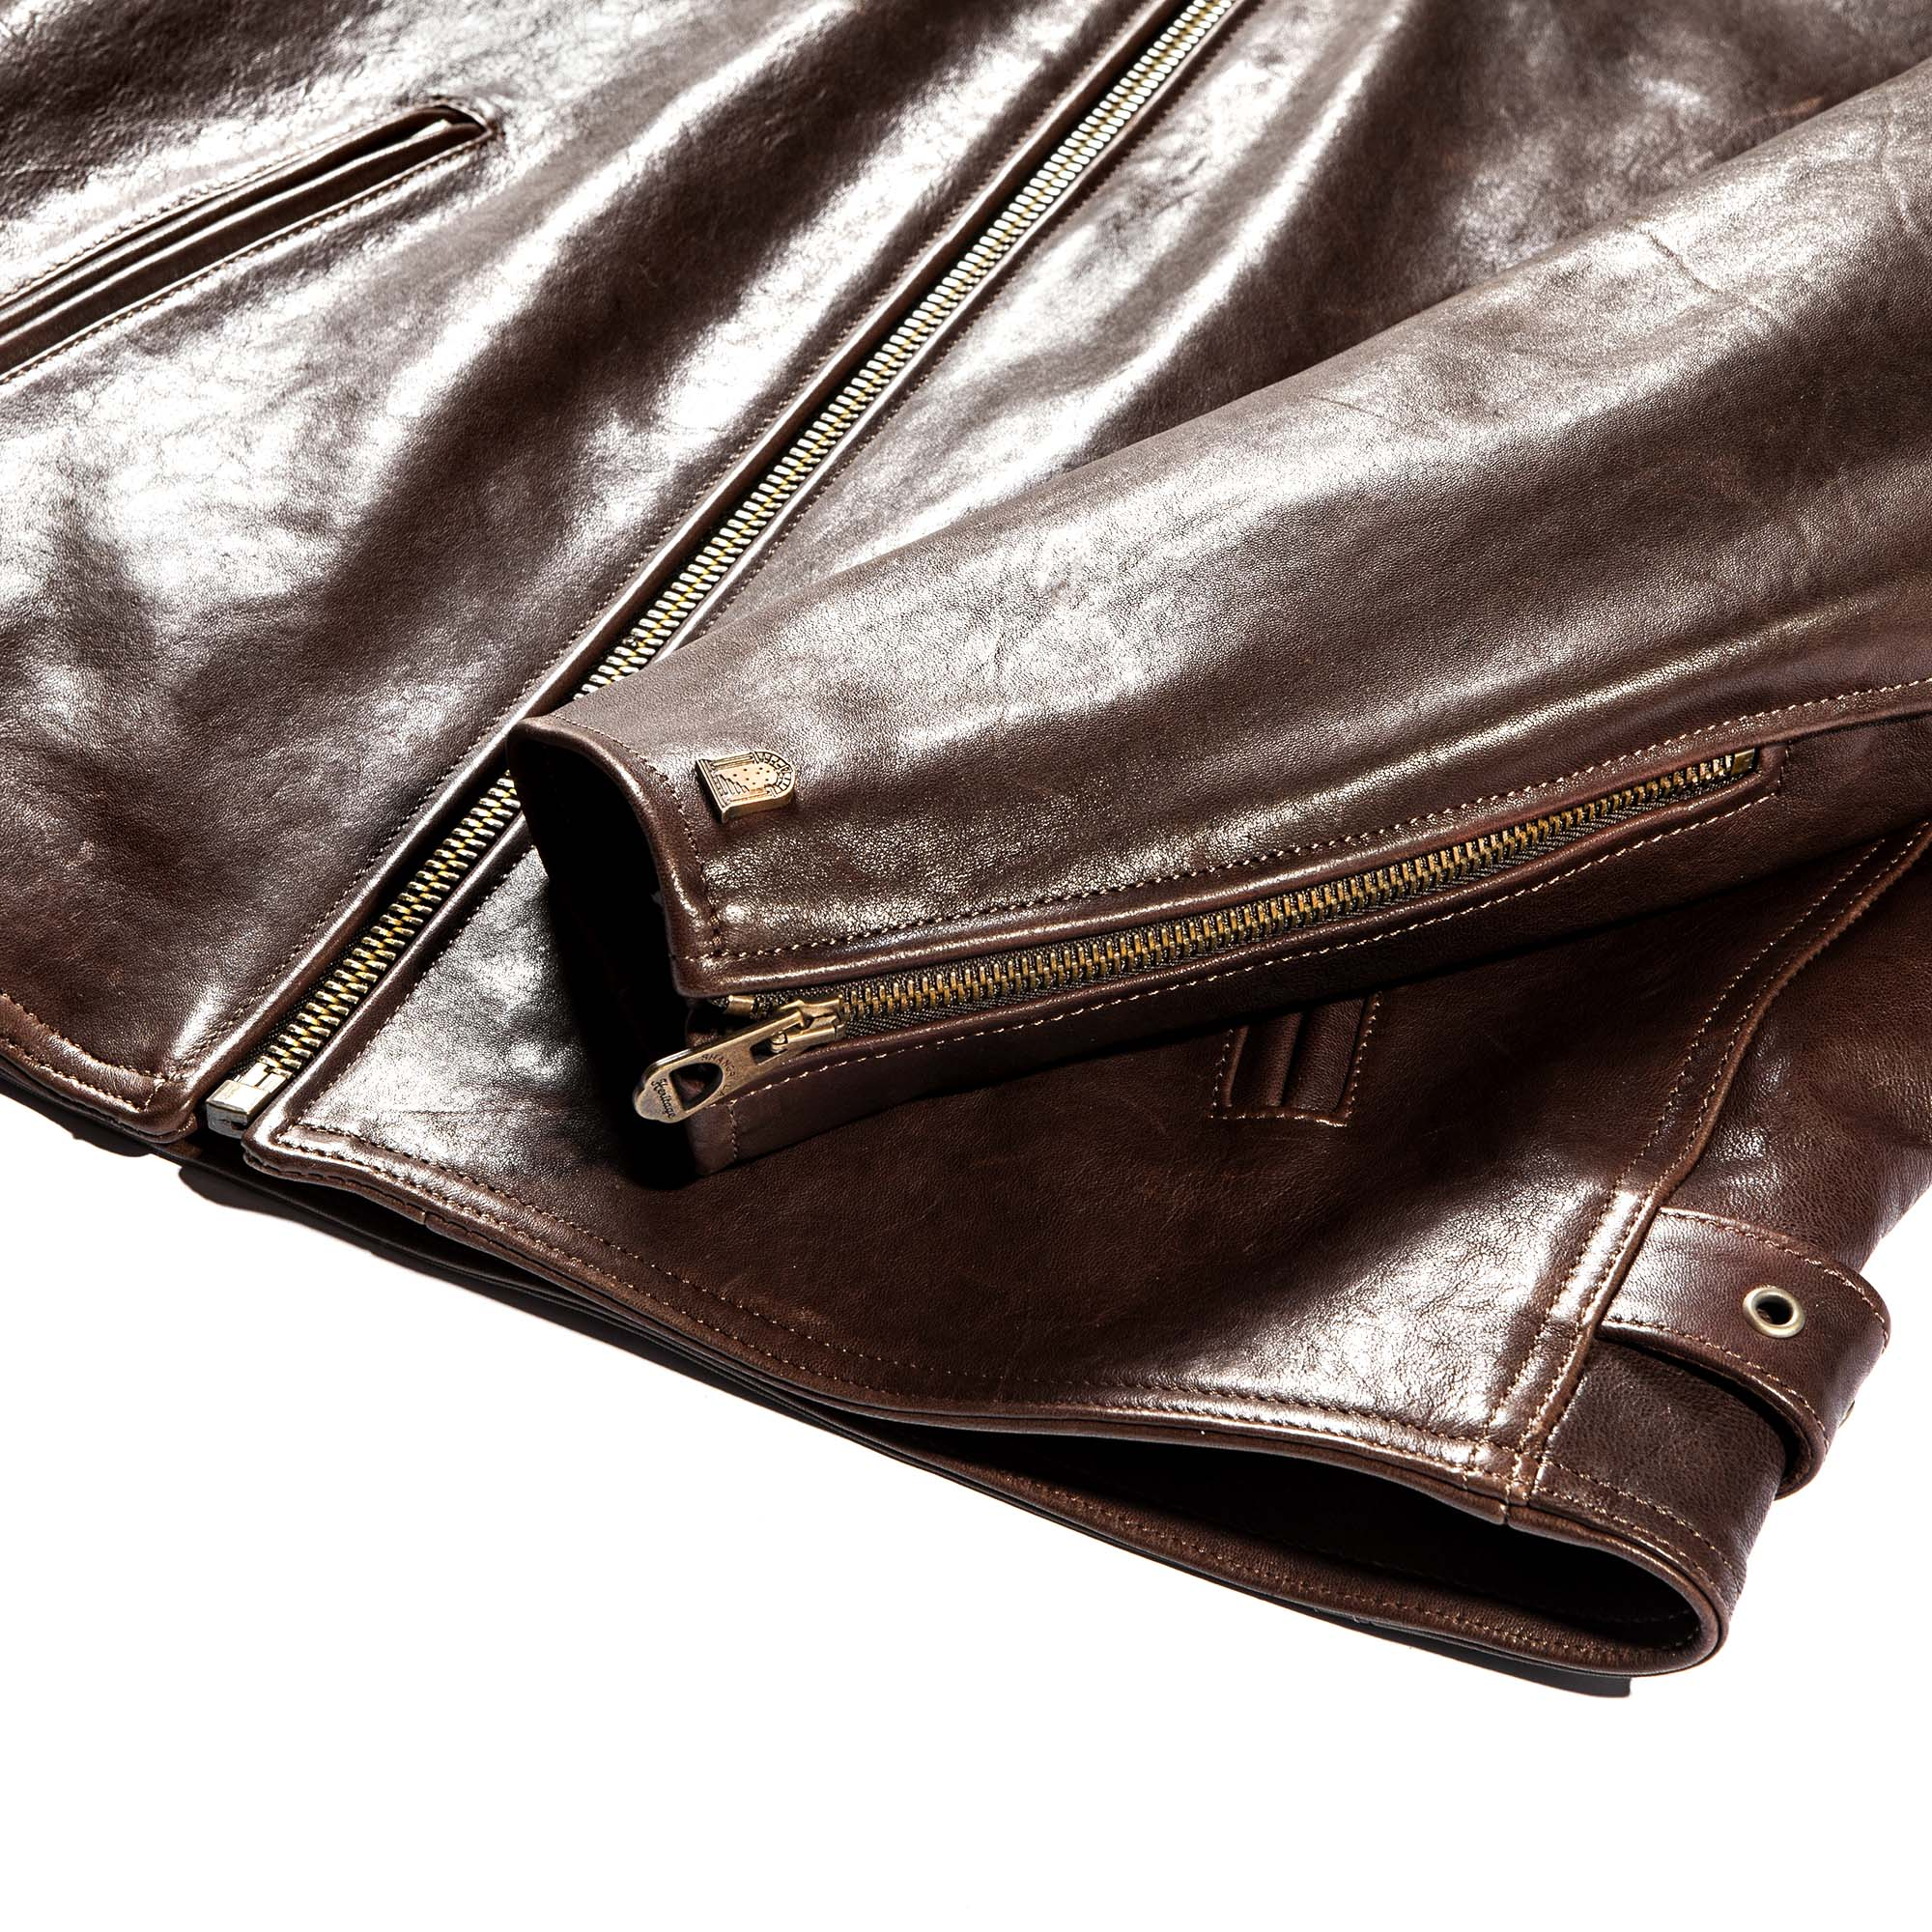 shangri-la-heritage-cafe-racer-brown-lambskin-jacket-still-life-sleeve